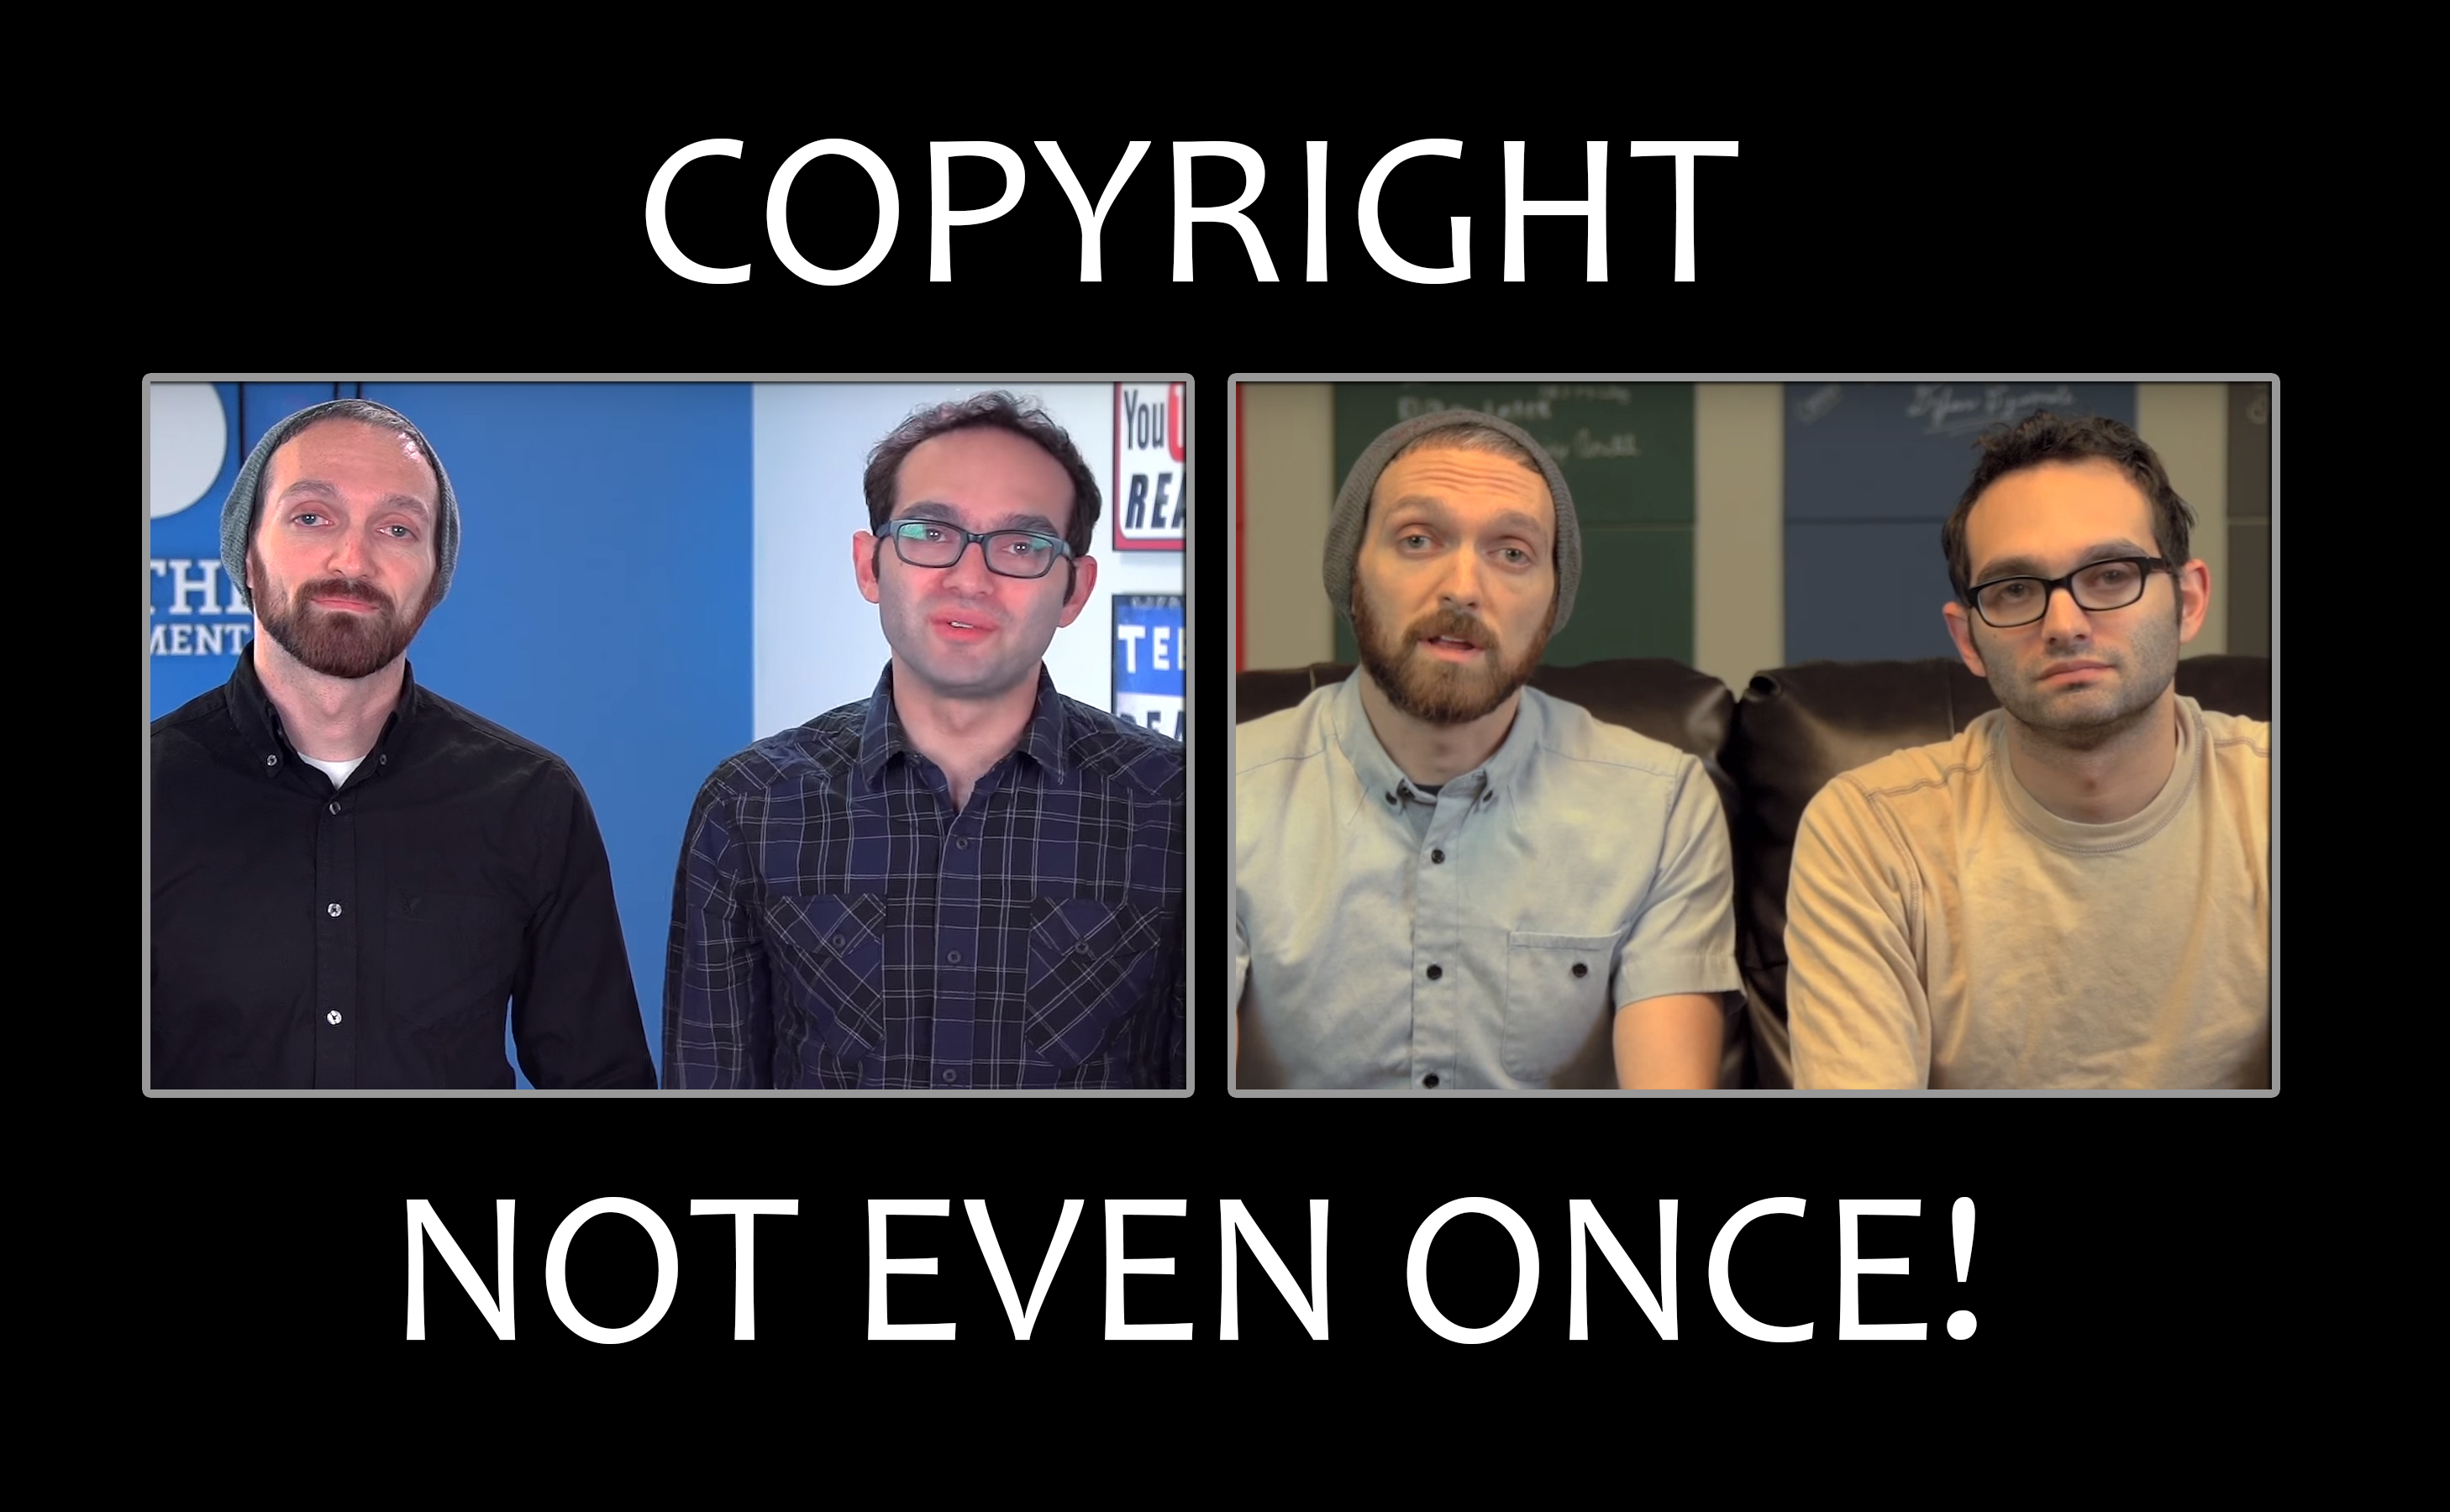 ff6 not even once! the fine brothers know your meme